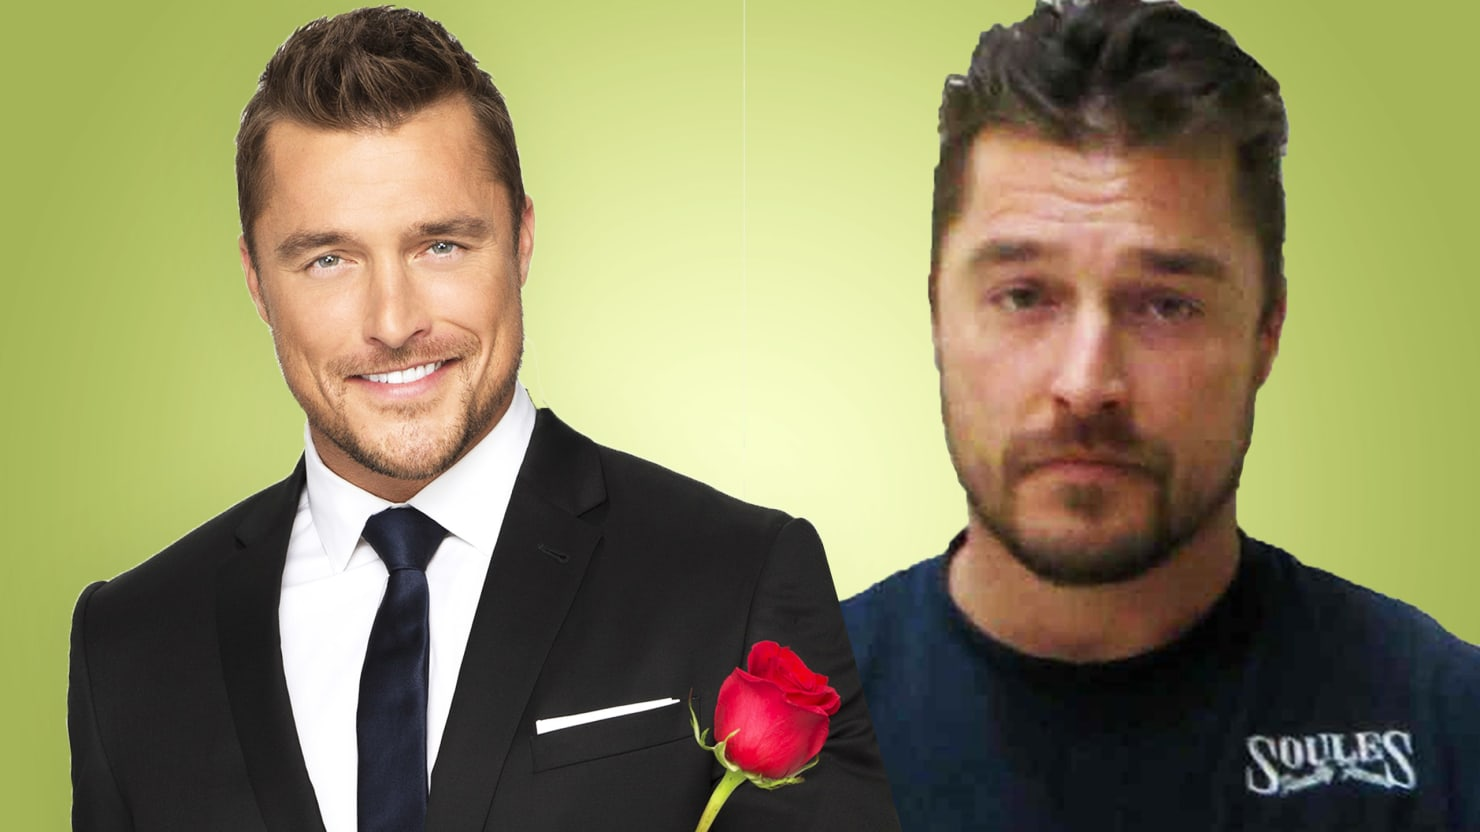 The Bachelor Star Chris Soules Is Not Nice Guy ABC Sold Us